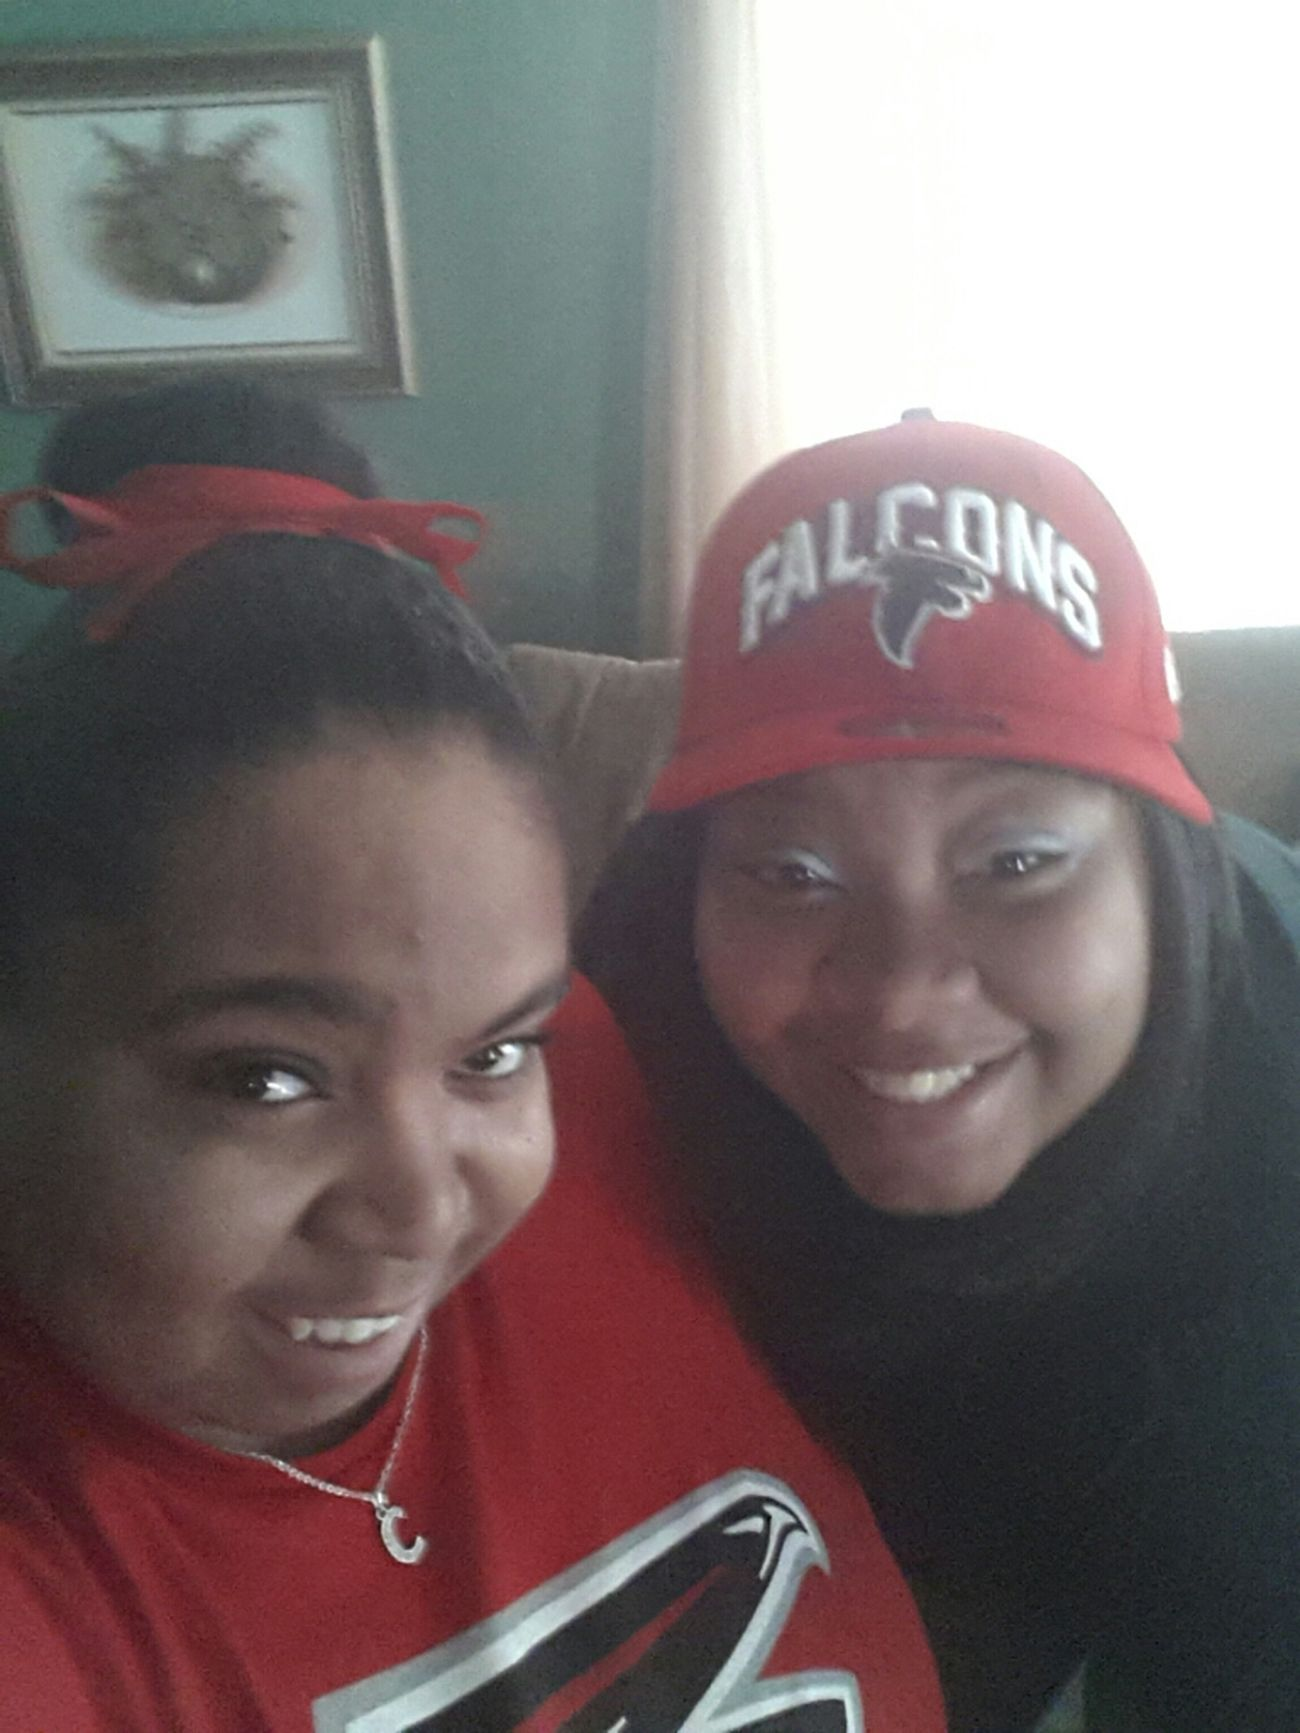 #FalconsNation